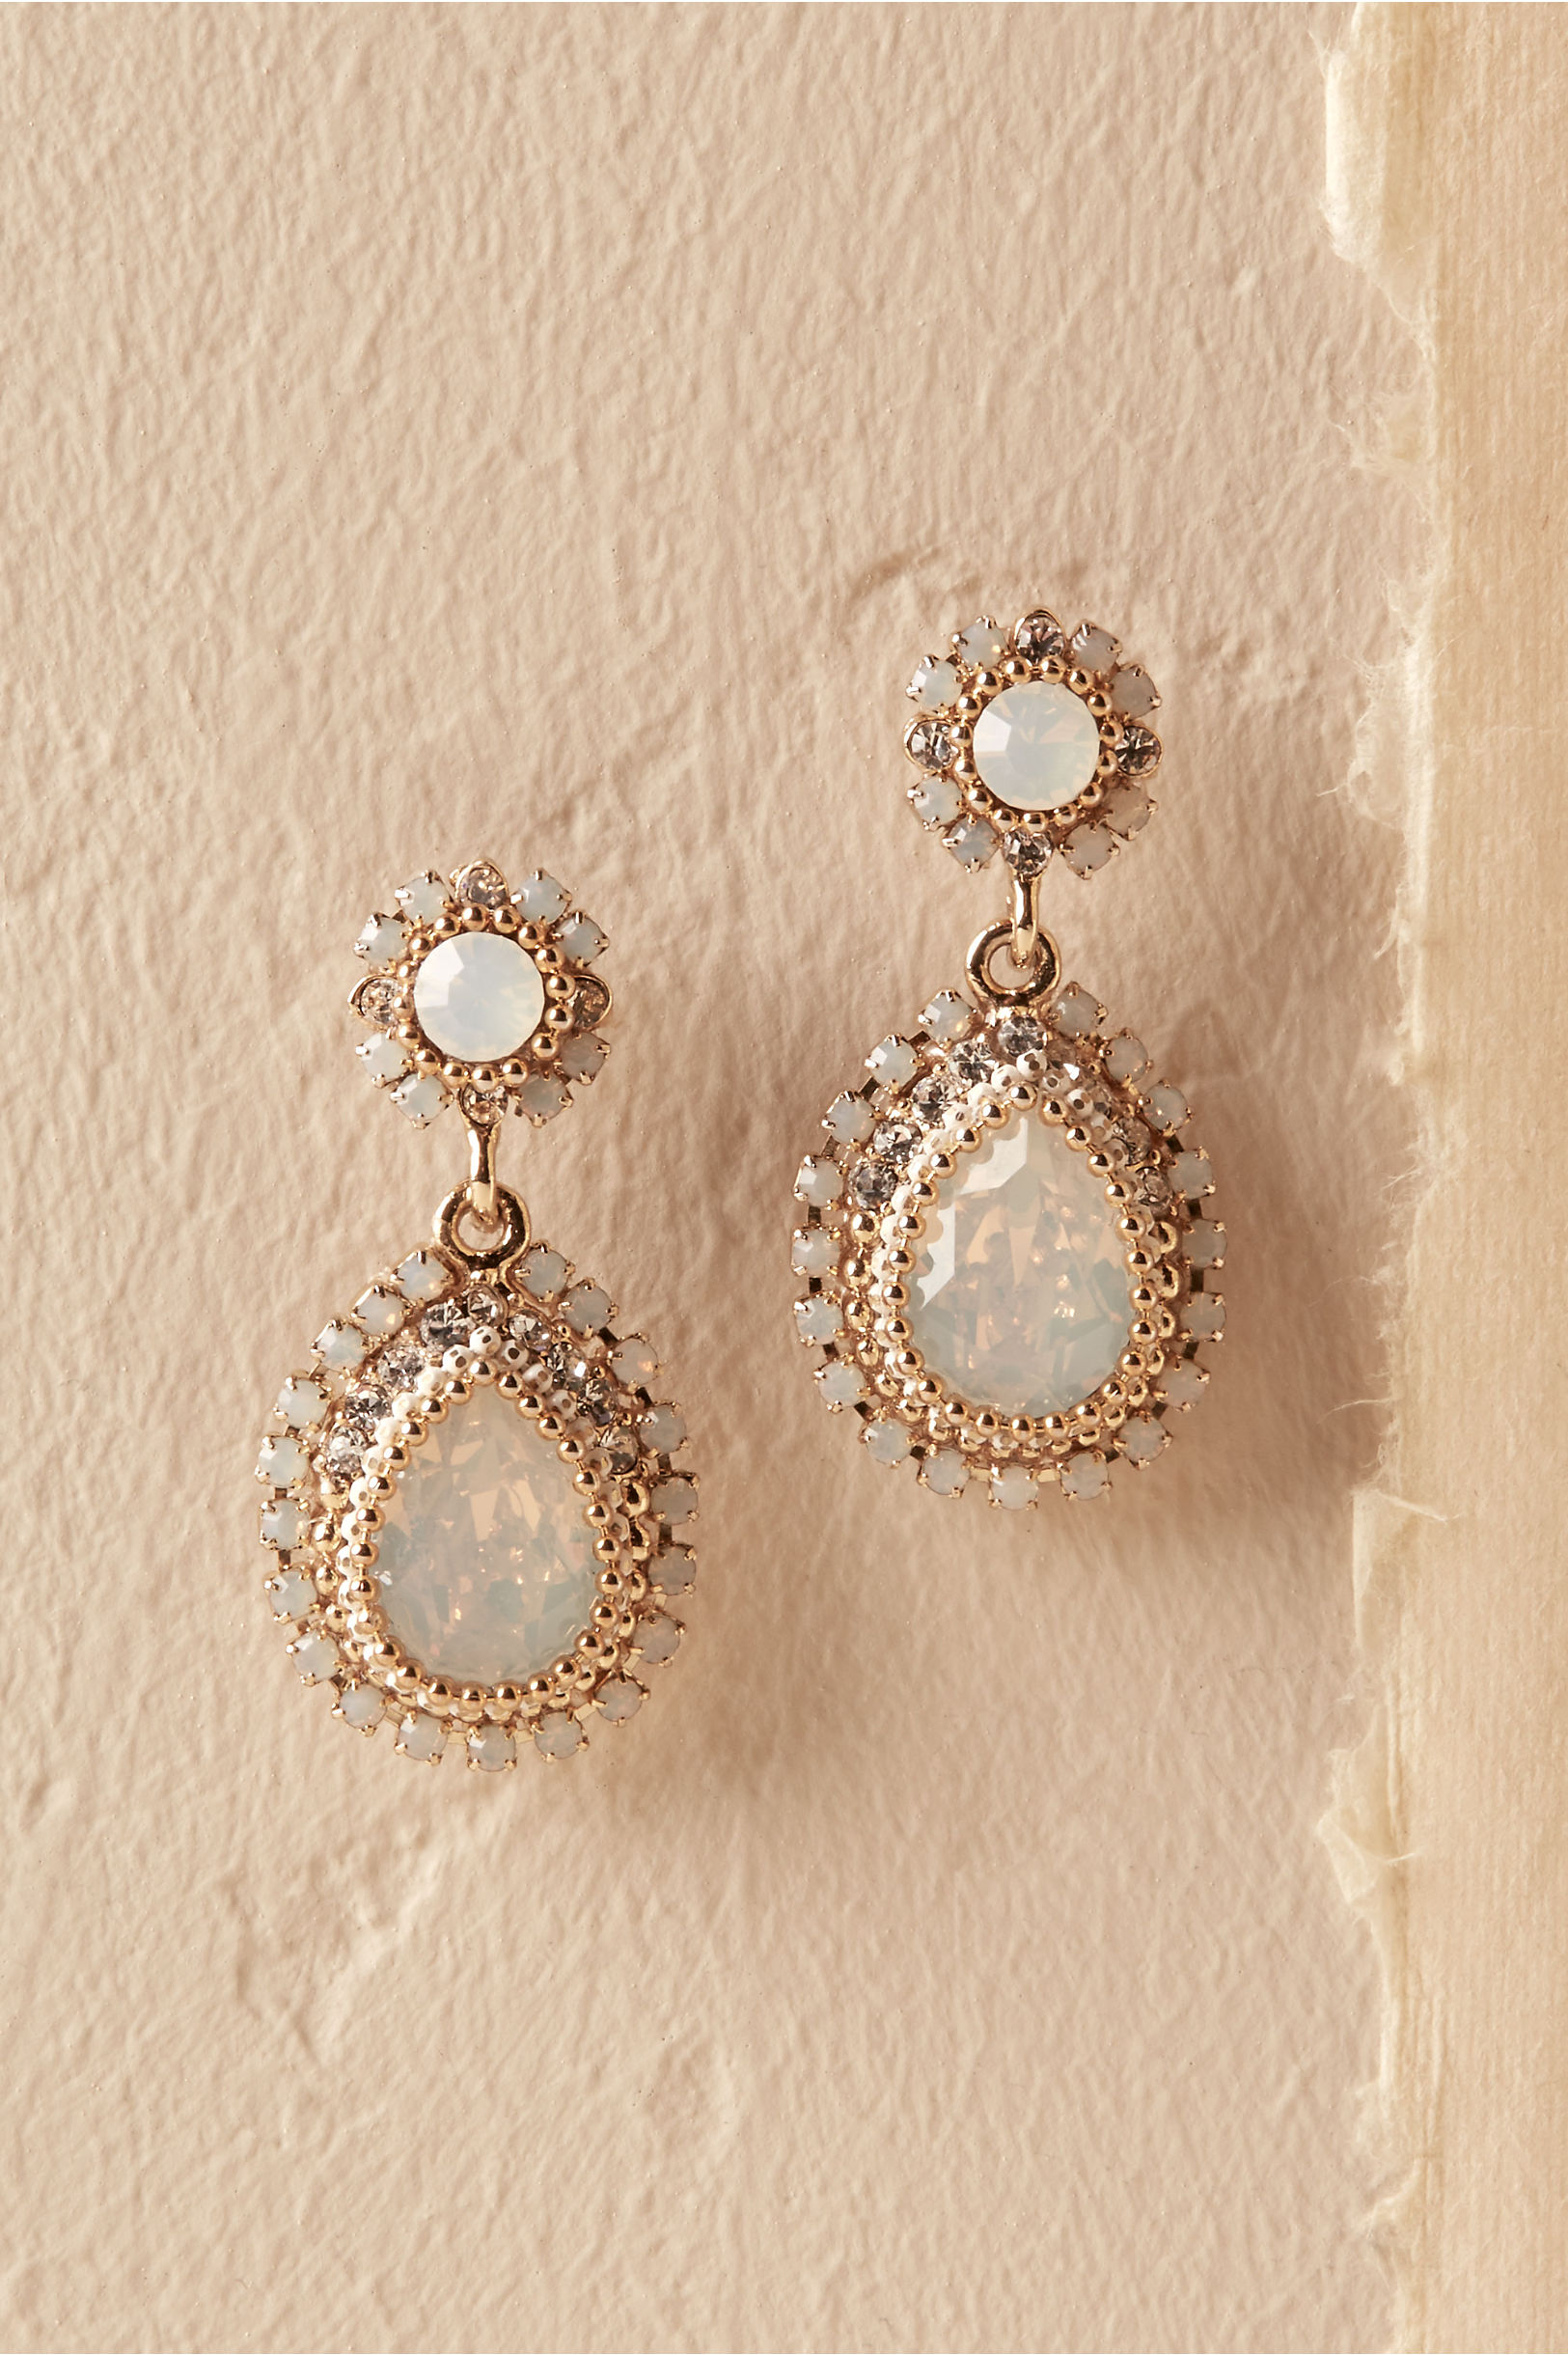 Maria Opal Earrings Gold in Bride | BHLDN